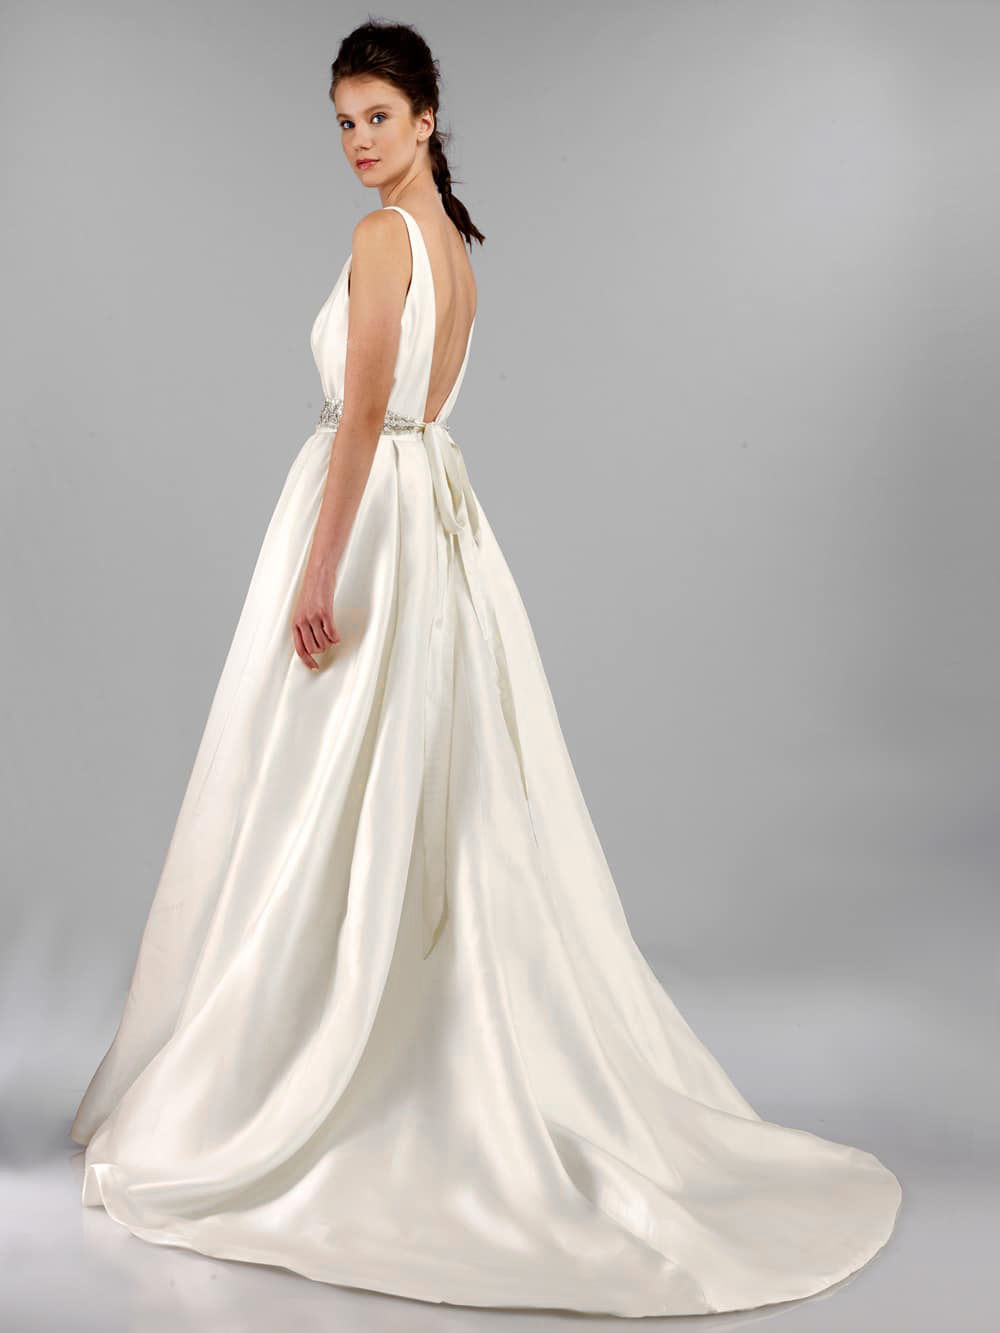 Tulle New York - Antonio Gual for Tulle New York believes that a wedding gown should be a true reflection of one's inner being. This stunning collection of gowns are known for their body-contouring feminine silhouettes and impeccable fit. Collection begins at $2,400.